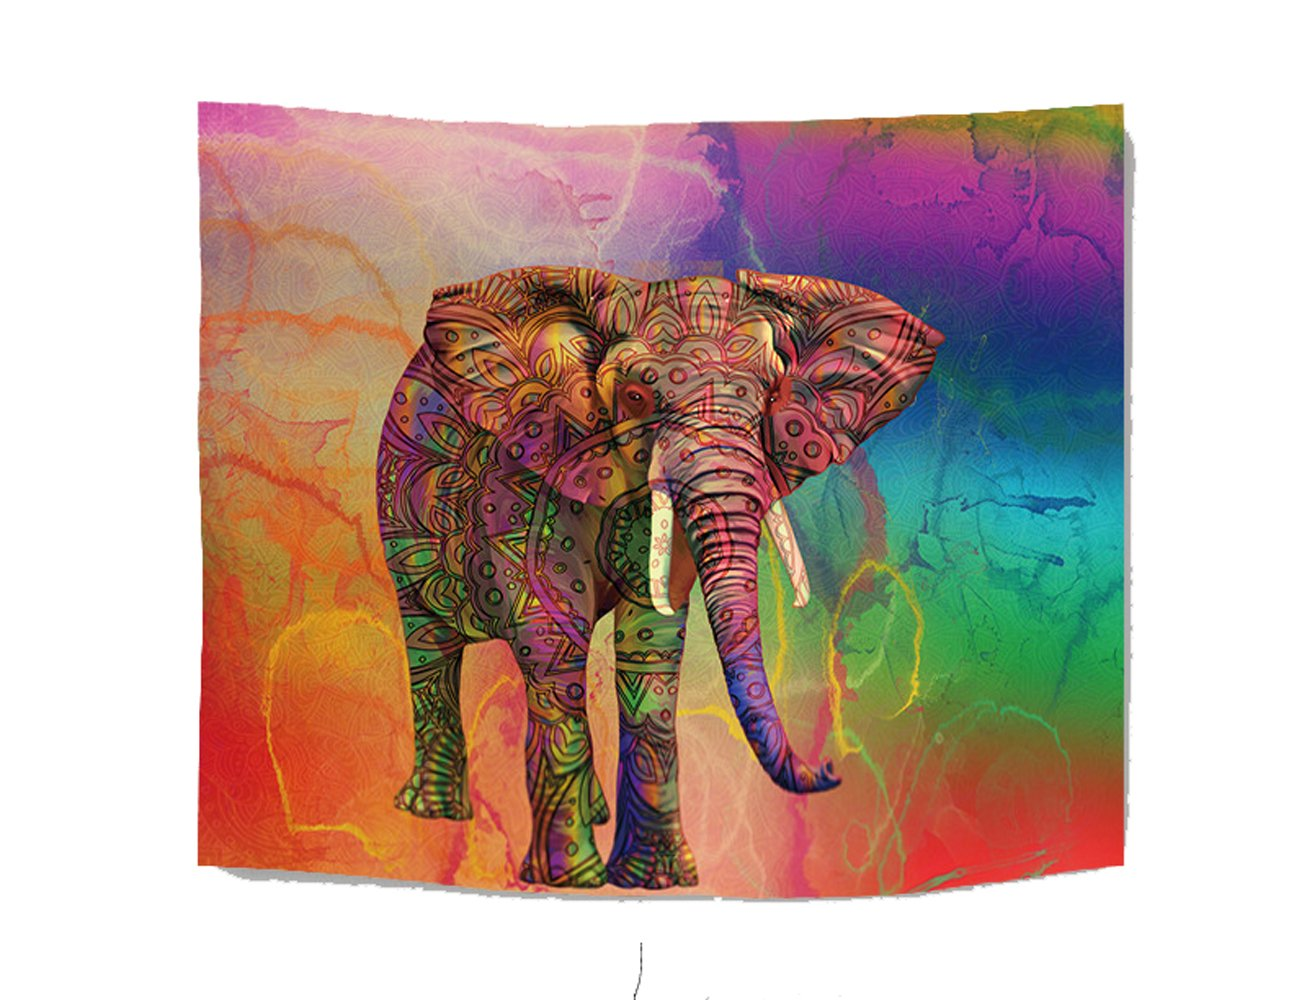 WCHUANG Boho Elephant Tapestry Wall Hanging, Dorm Décor Bedspread Yoga Mat Beach Coverlet Curtain